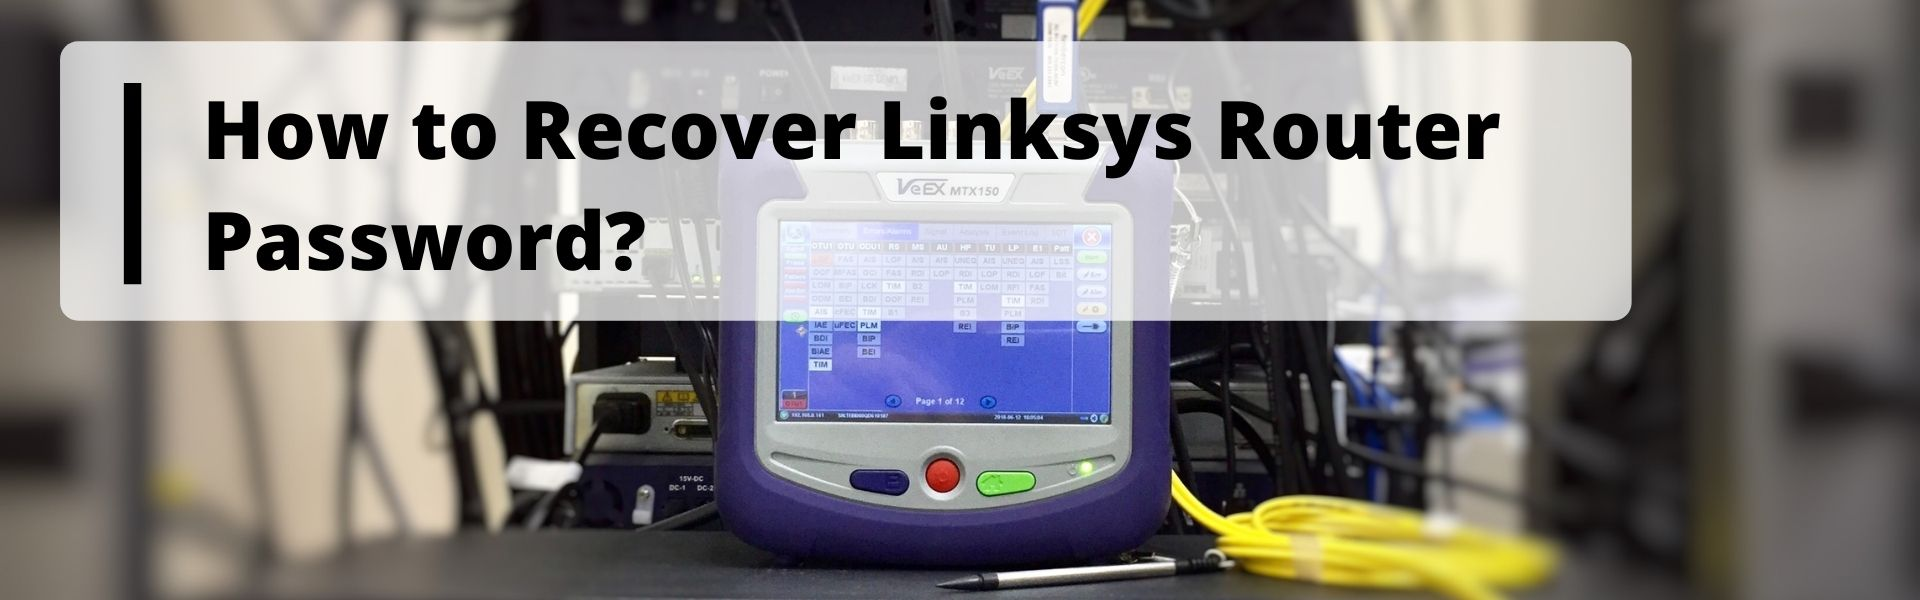 2021-02-04-02-19-57How to Recover Linksys Router Password